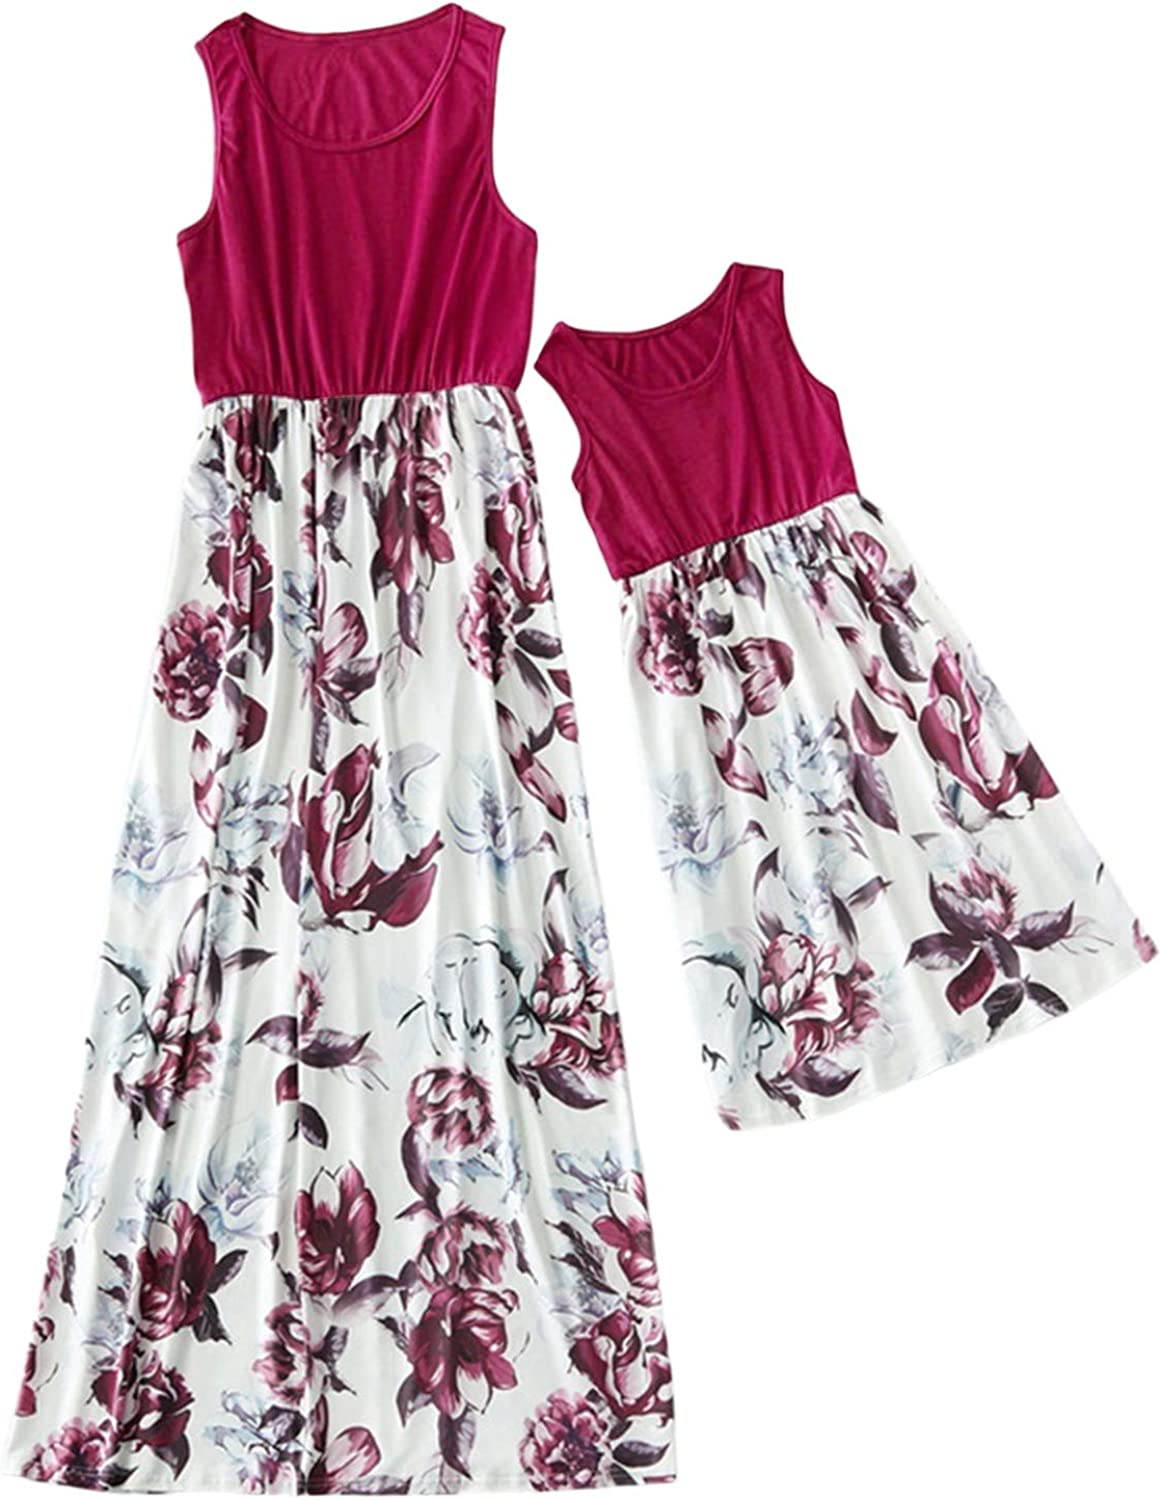 Mommy and Me Sleeveless Flower Print Maxi Tank Dresses Family Summer Matching Set Outfits, Mother and Daughter Dresses